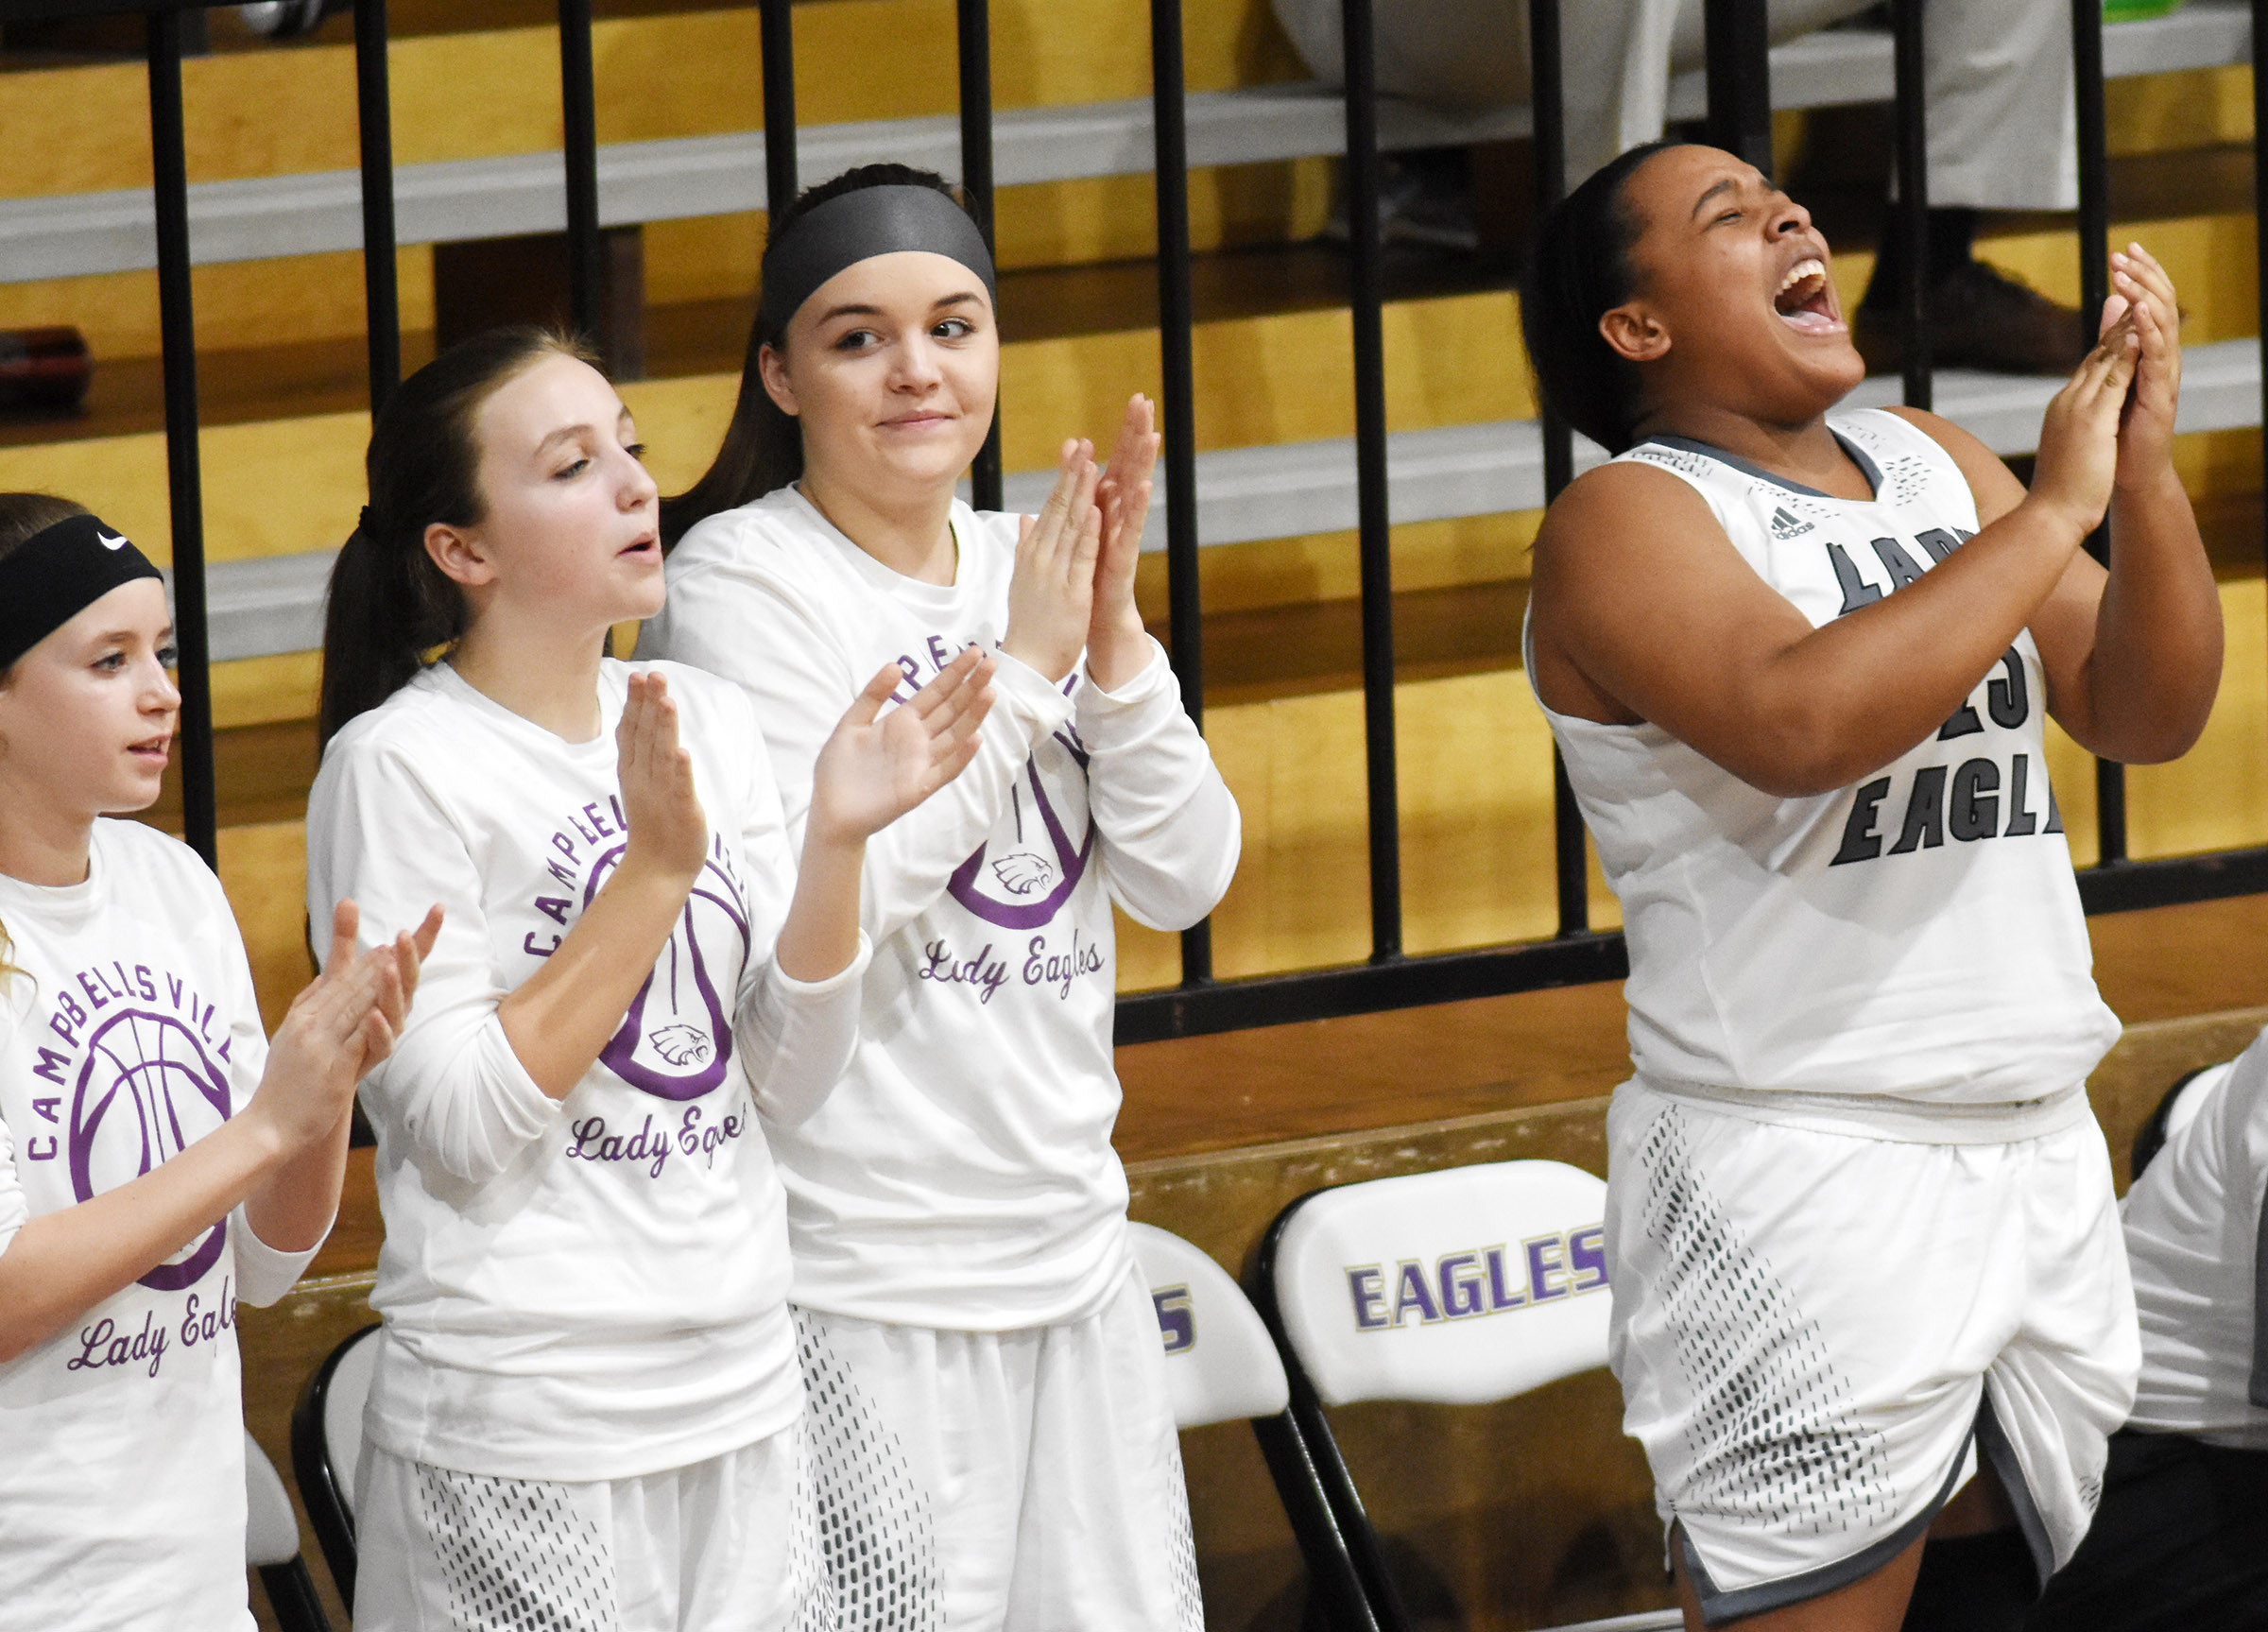 CHS senior Kayla Young and her teammates, from left, Campbellsville Middle School eighth-graders Rylee Petett and Lainey Watson and freshman Kenzi Forbis cheer as their team defeats Adair County.